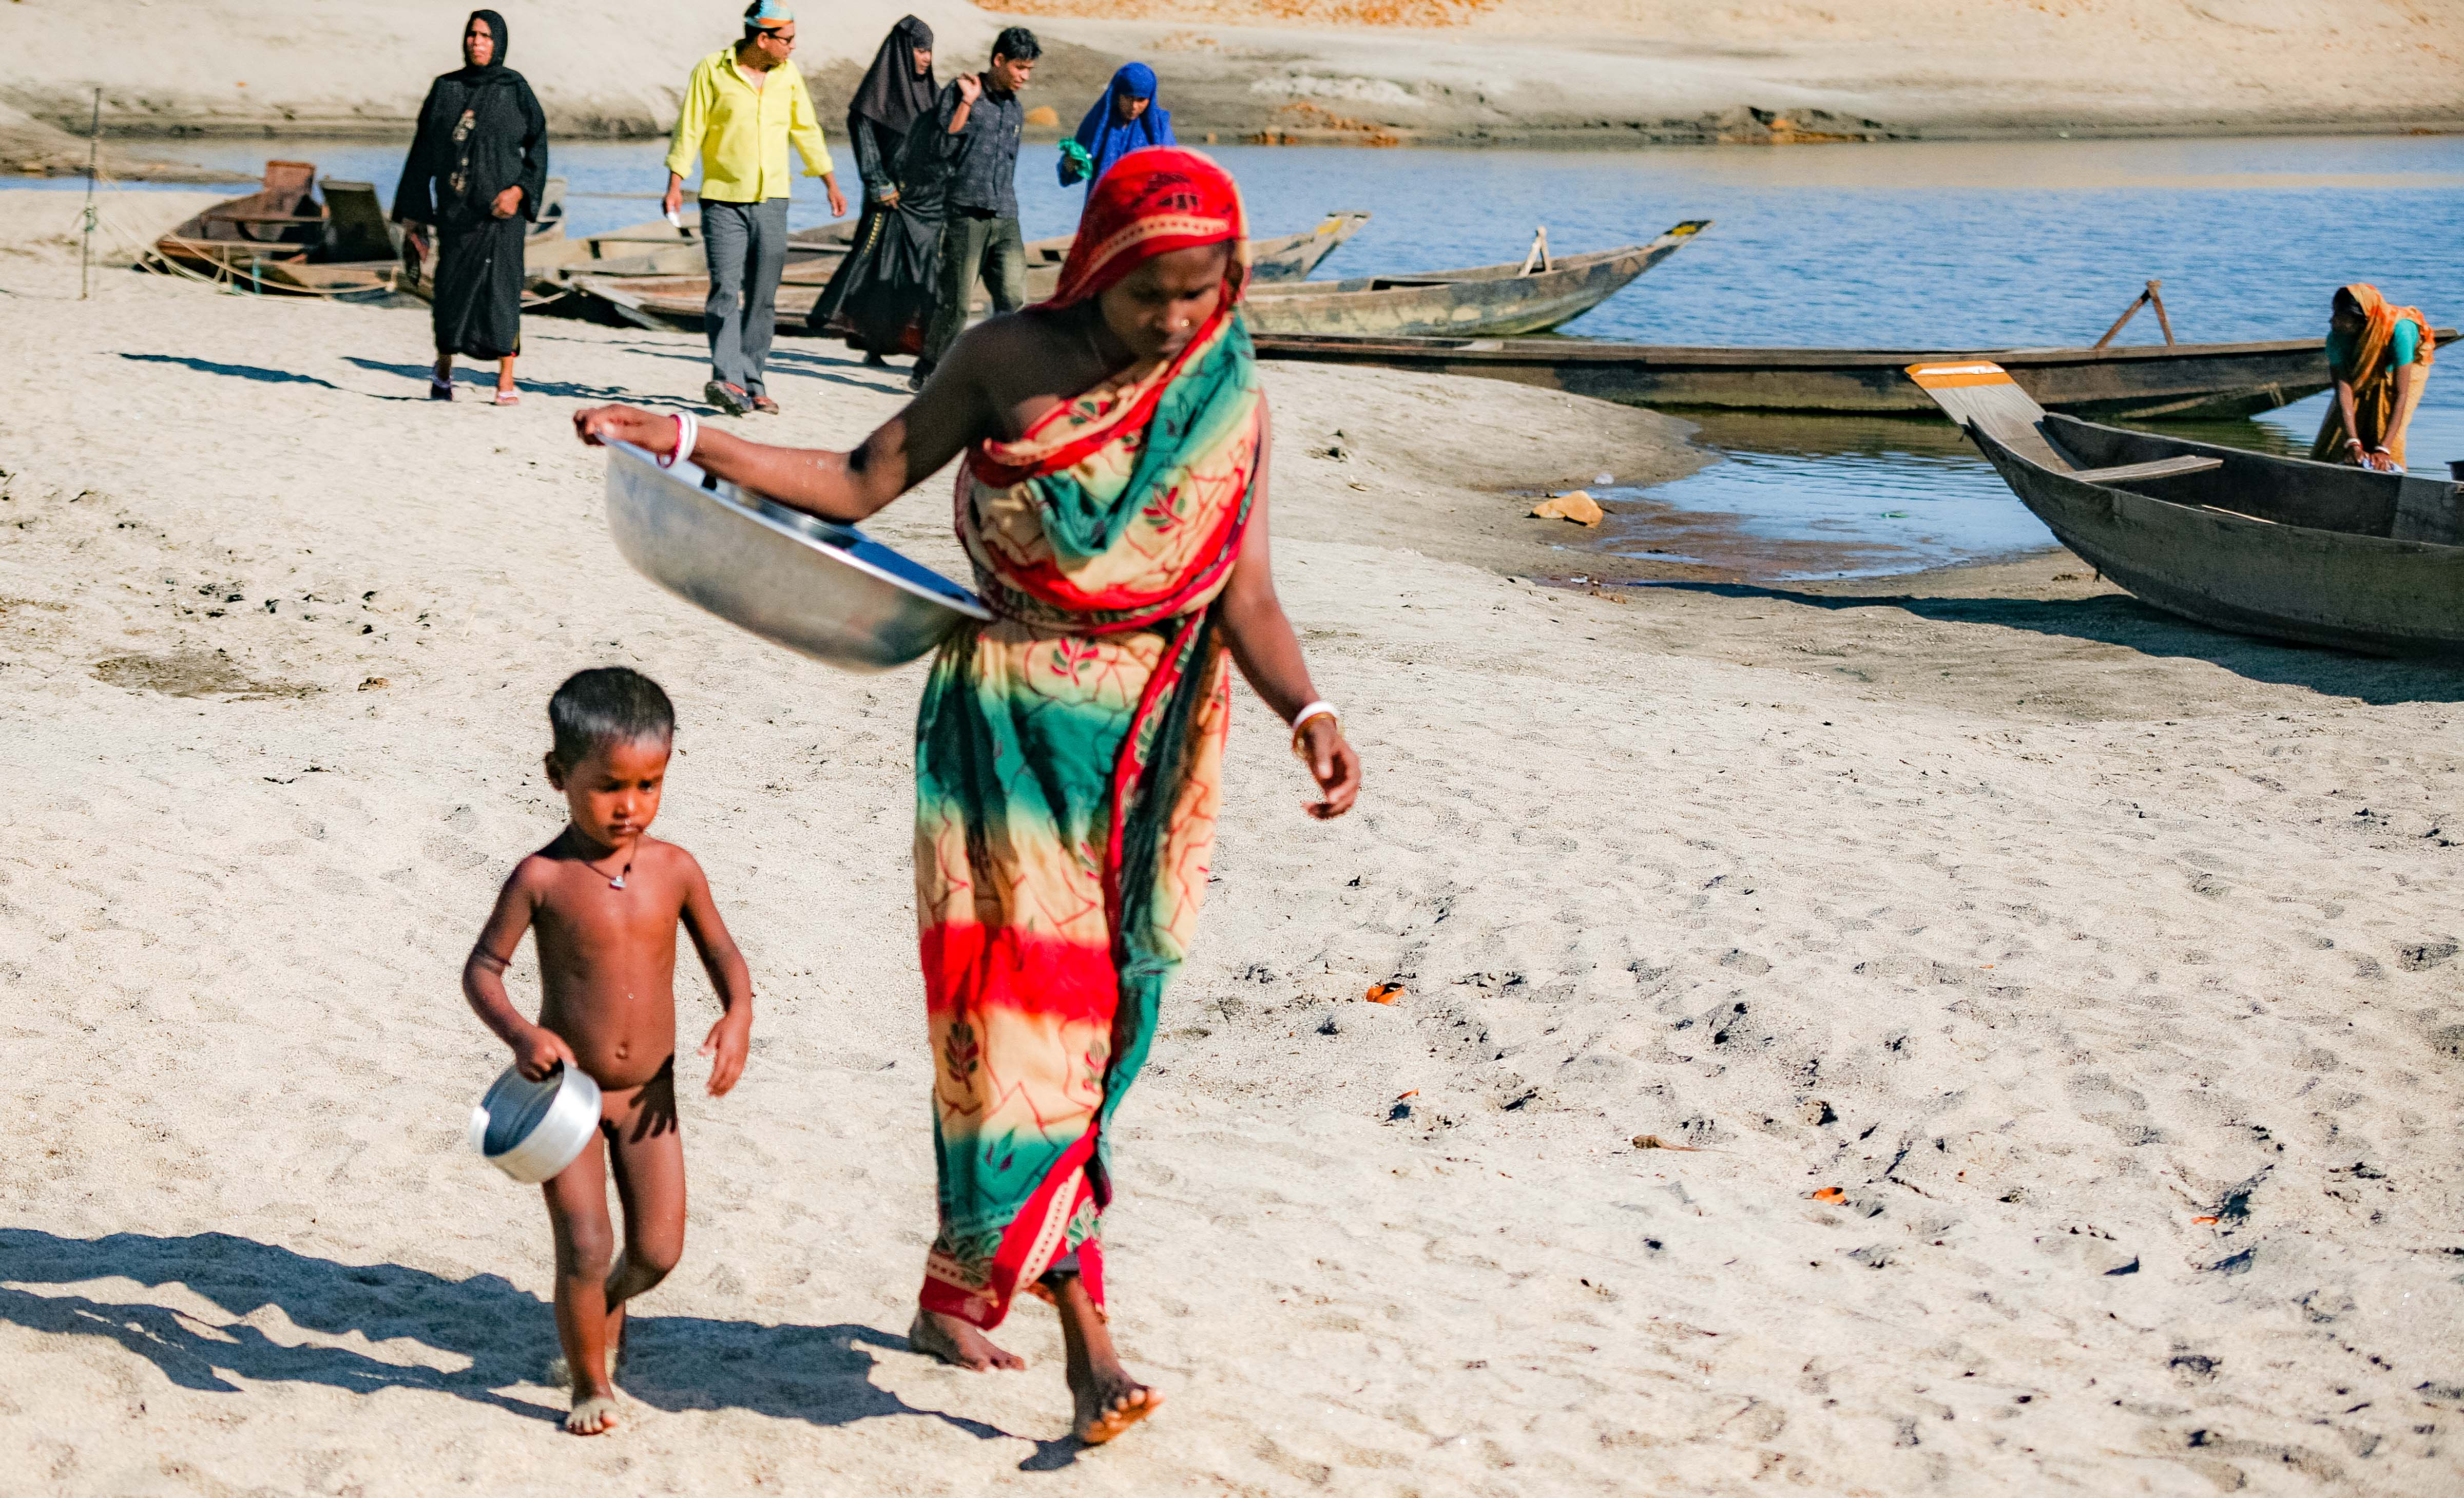 Bangladesh, Sylhet Prov, Woman With Youth, 2009, IMG 8227